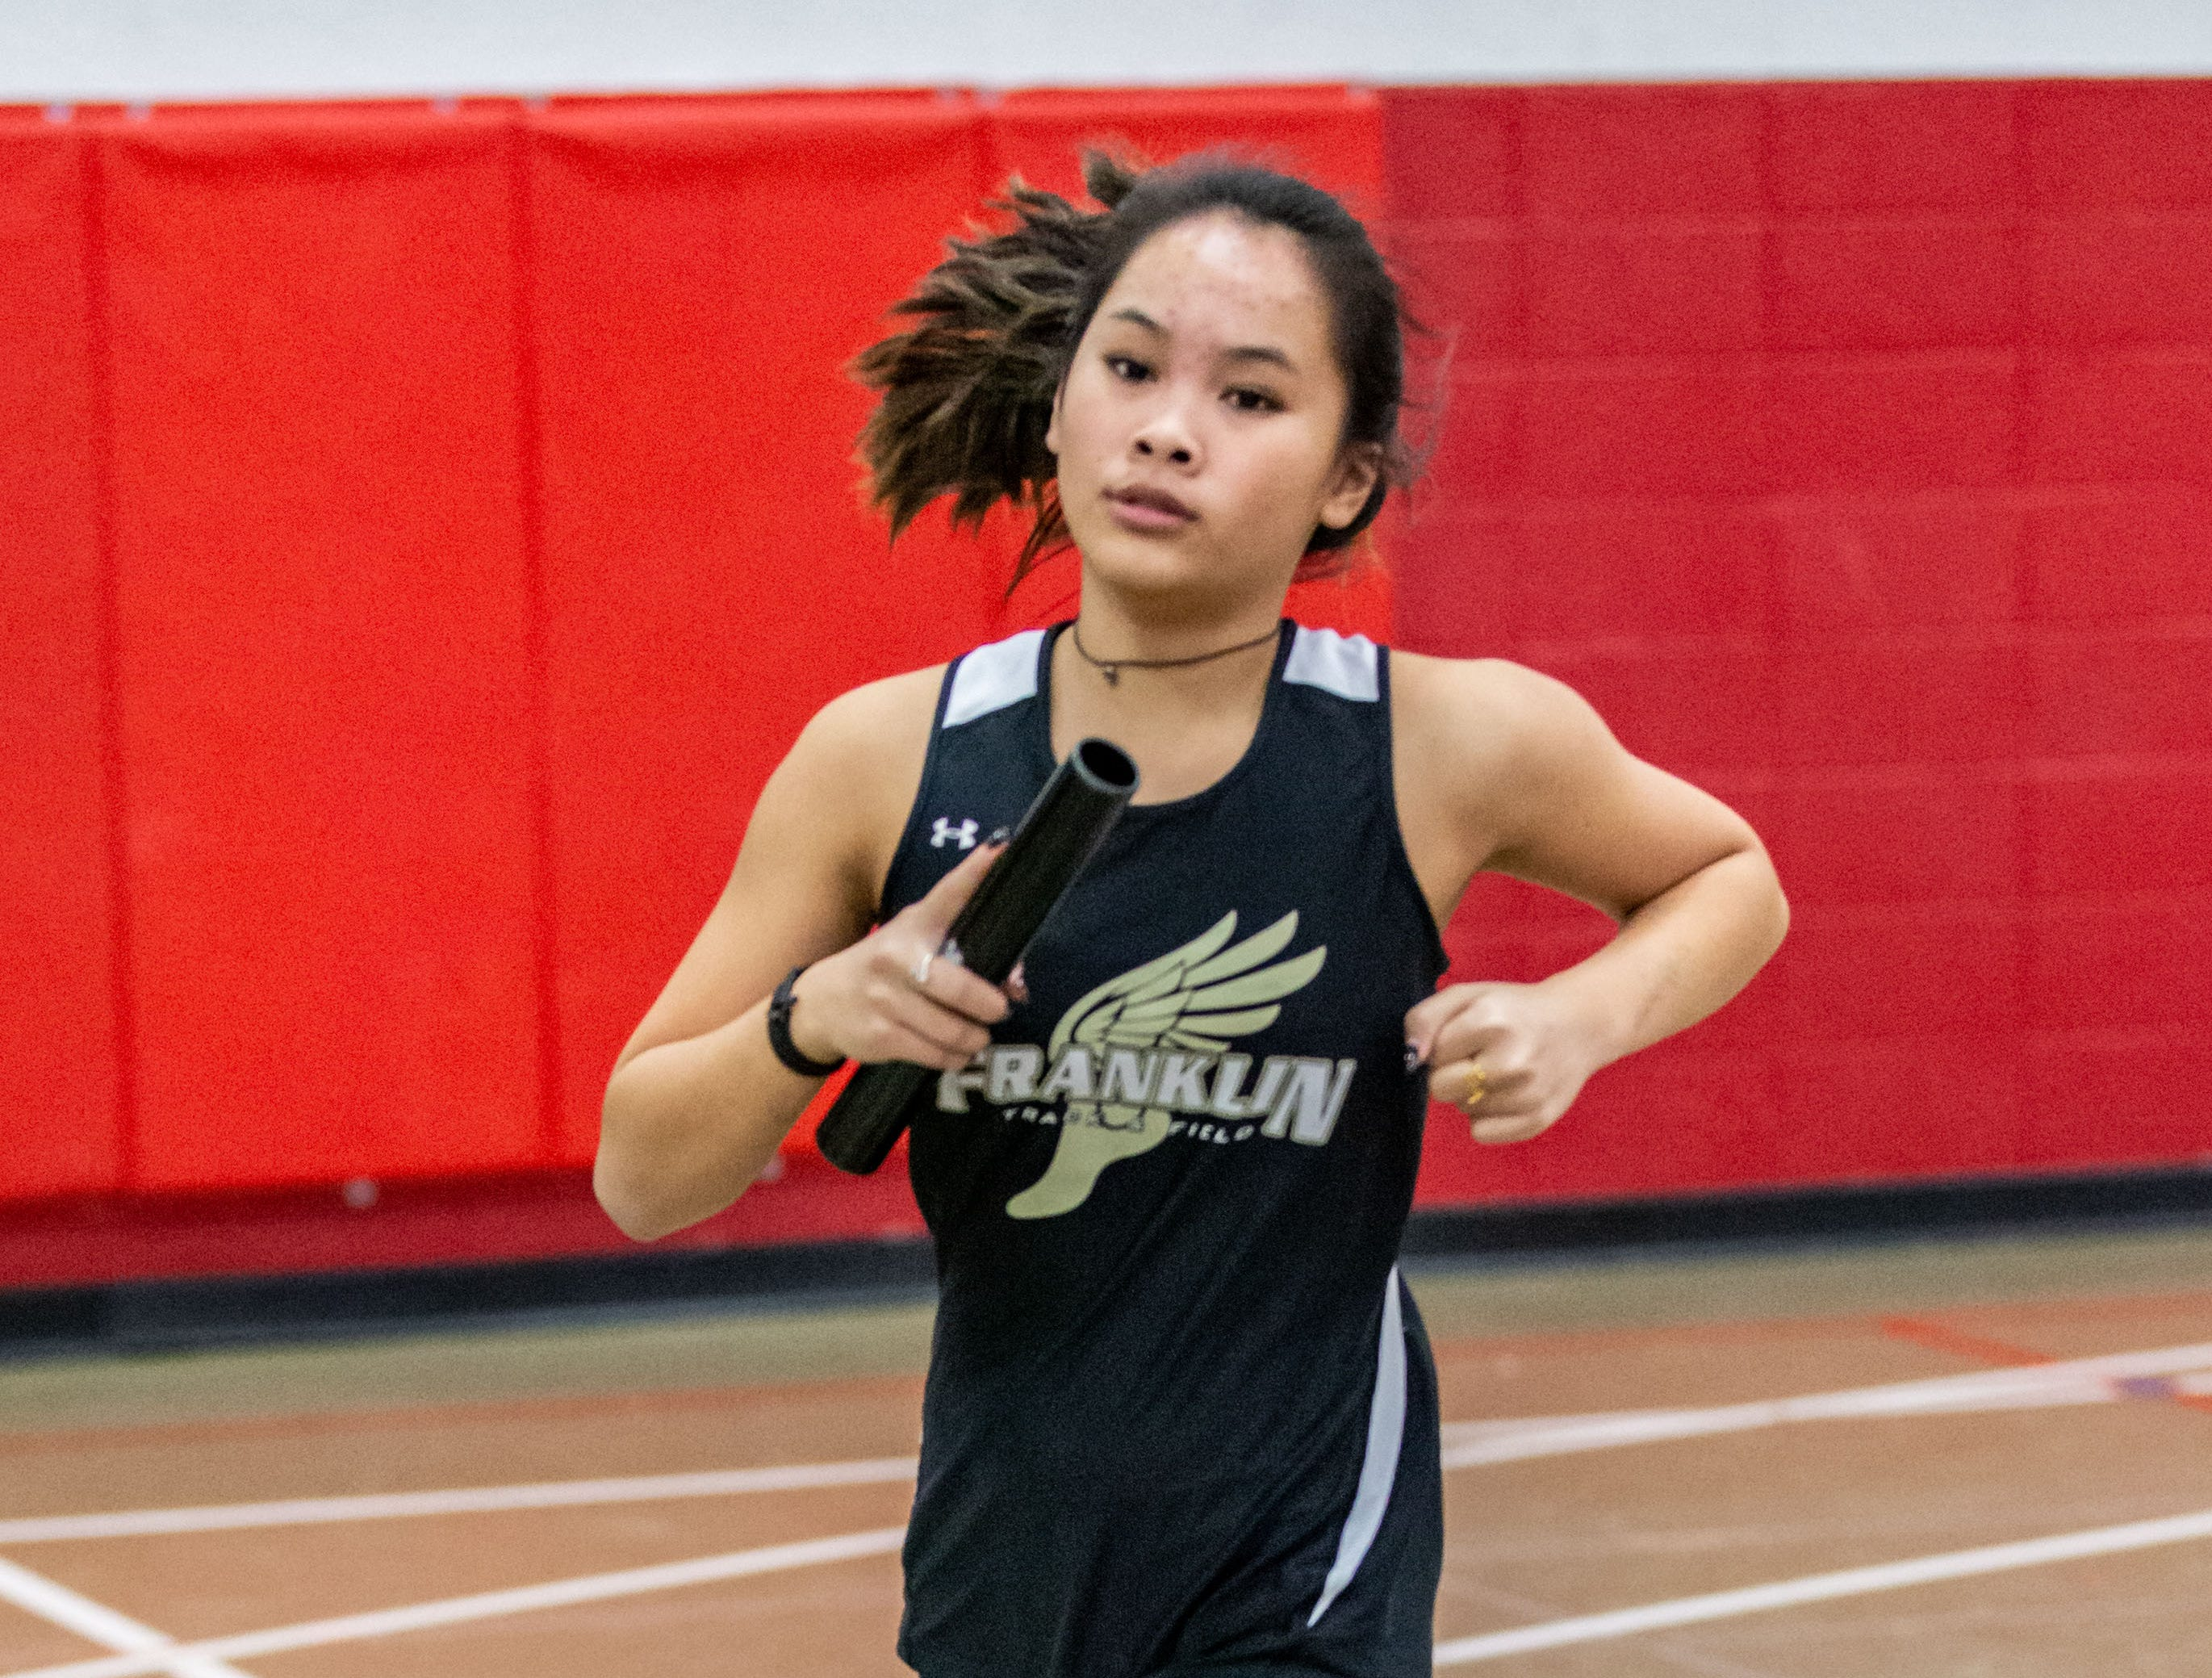 Franklin's Kailey Brandenburg competes in the distance medley at the Peter Rempe Cardinal Relays hosted by Waukesha South on Thursday, March 21, 2019.